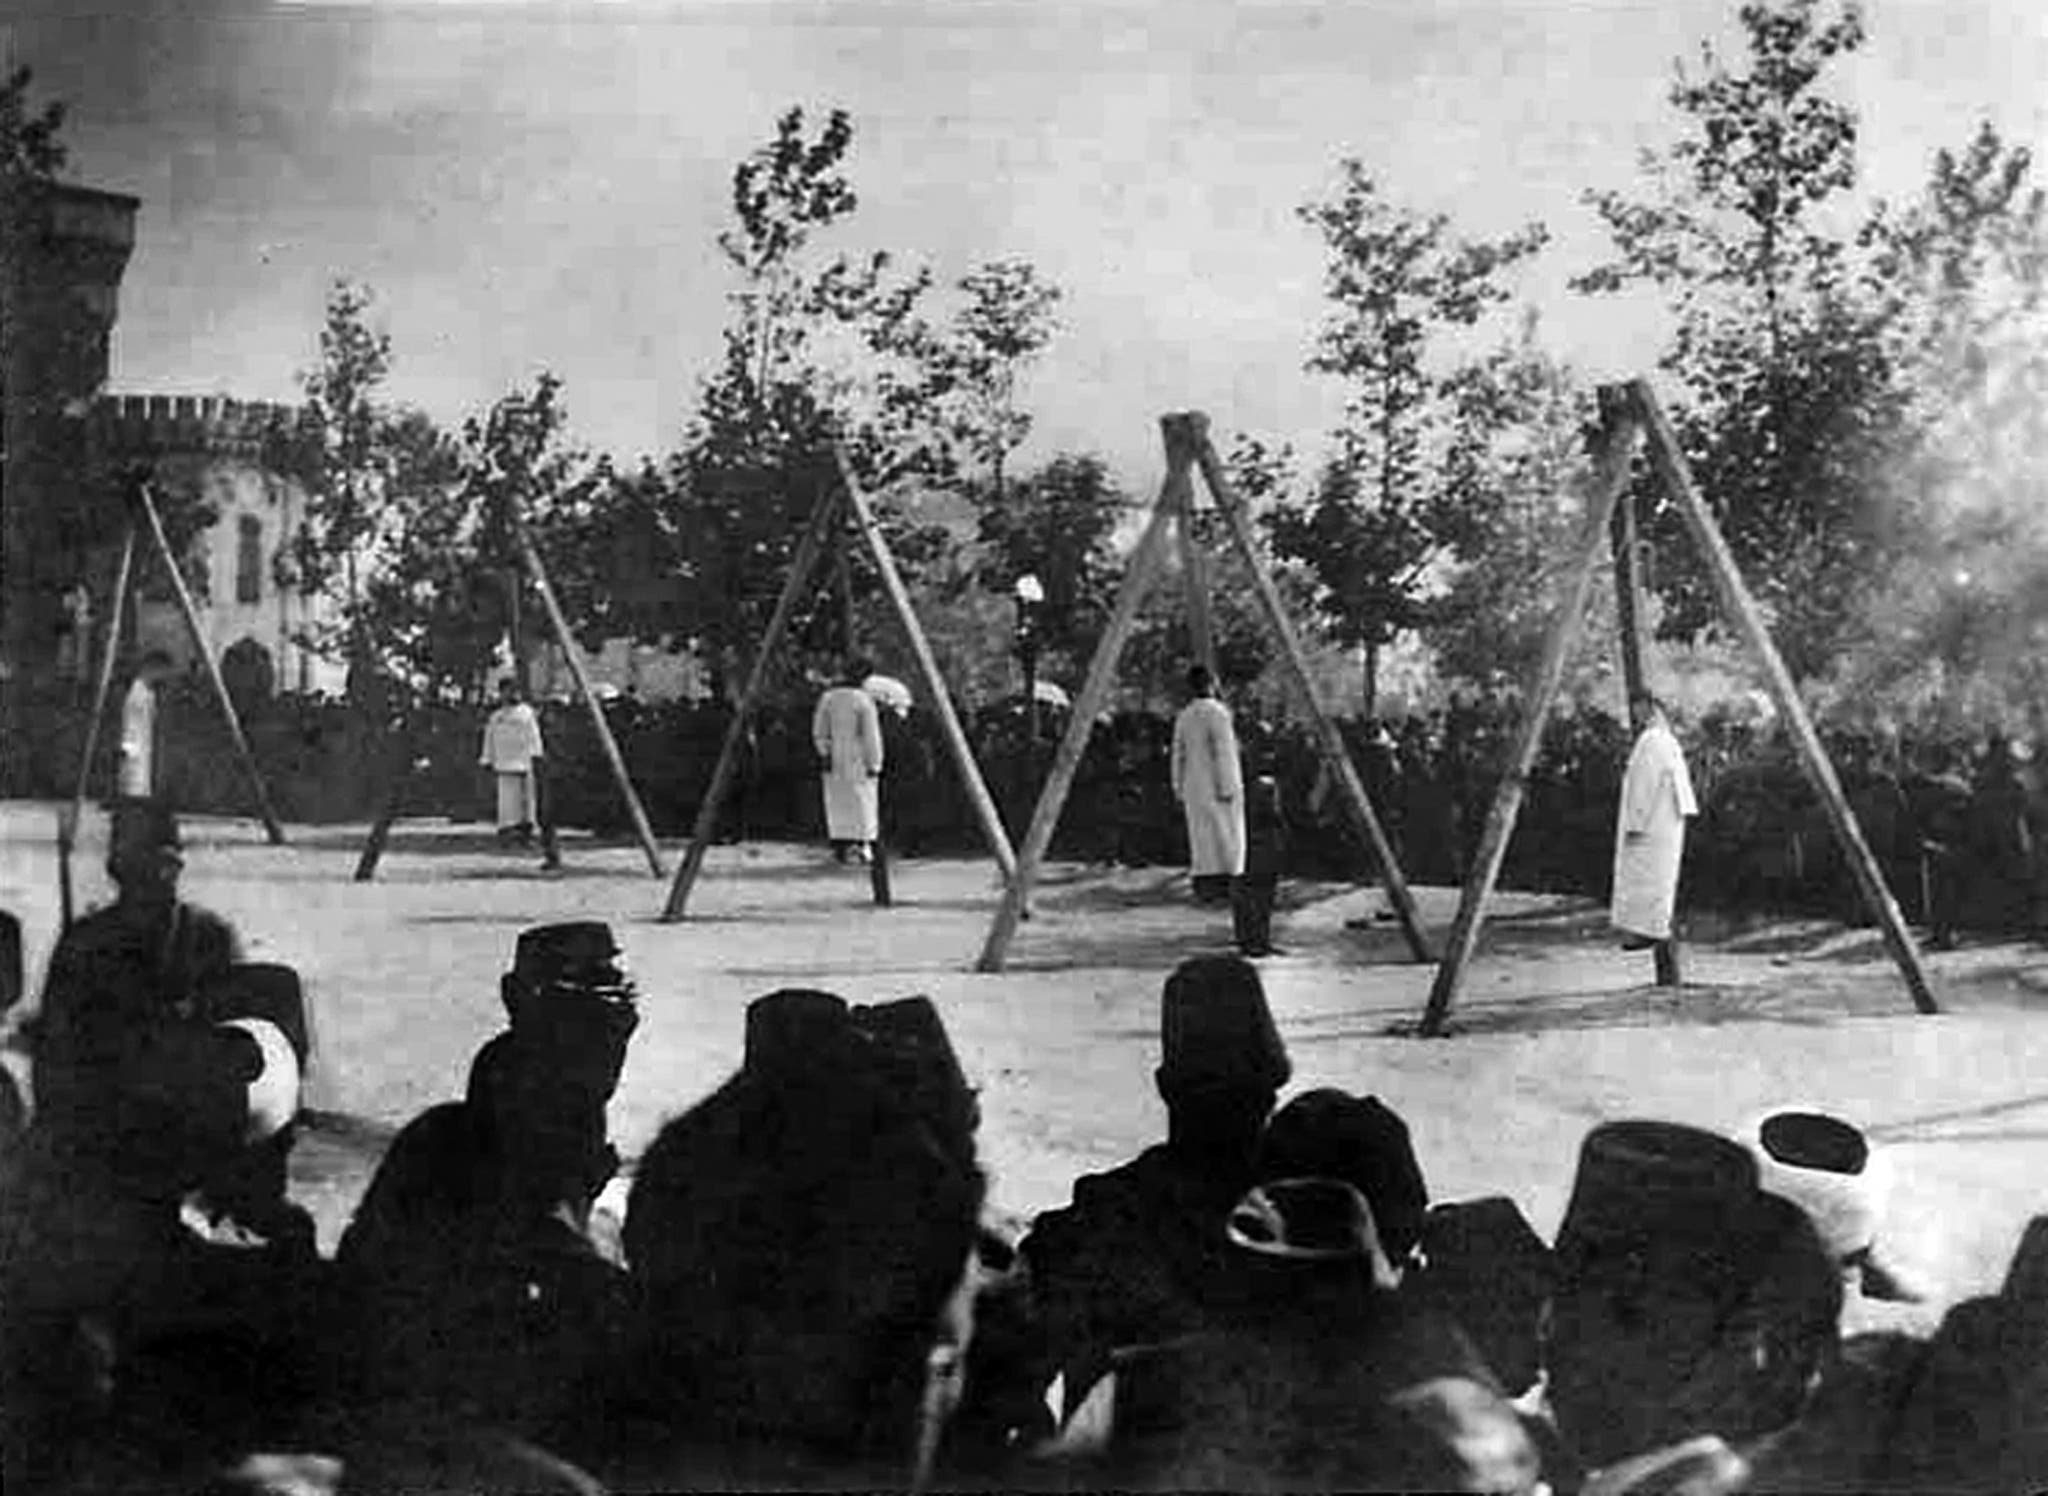 A picture released by the Armenian Genocide Museum-Institute purportedly shows Armenians hung by Ottoman forces in Constantinople in June 1915. Armenians say up to 1.5 million of their forebears were killed in a 1915-16 genocide by Turkey's former Ottoman Empire. Turkey says 500,000 died and ascribes the toll to fighting and starvation during World War I. (File photo: AFP)